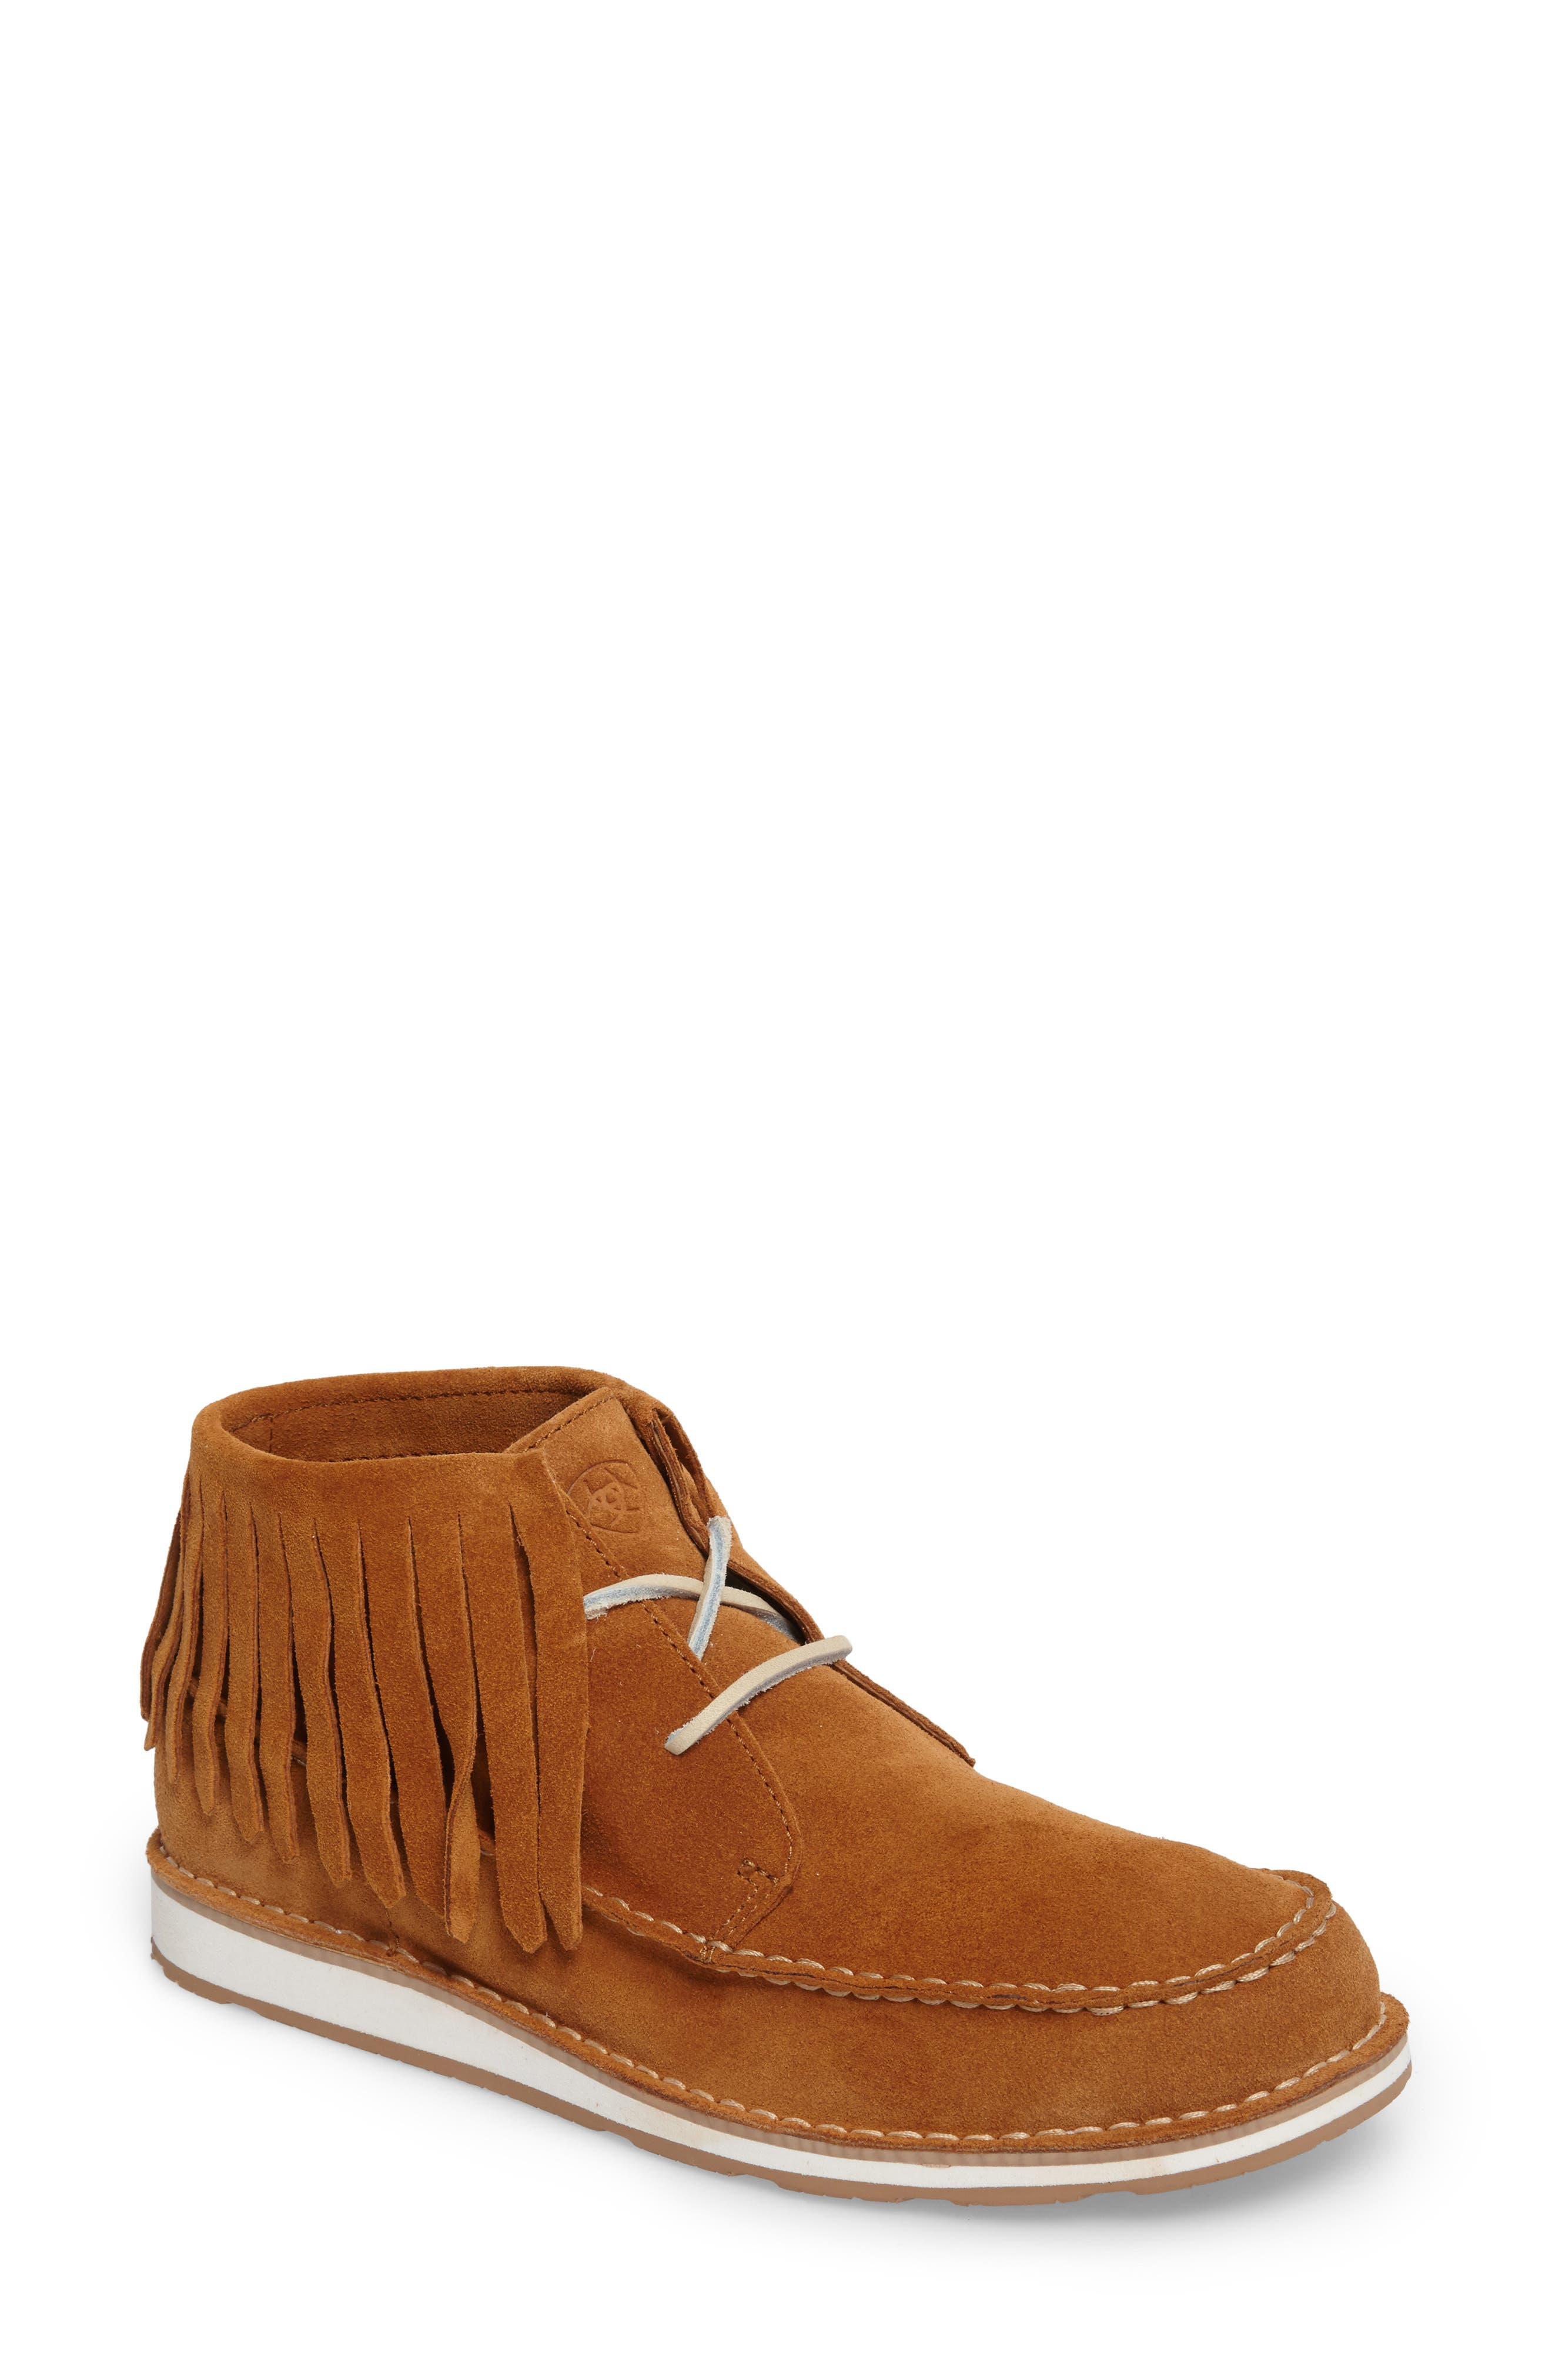 Alternate Image 1 Selected - Ariat Cruiser Fringe Chukka Boot (Women)